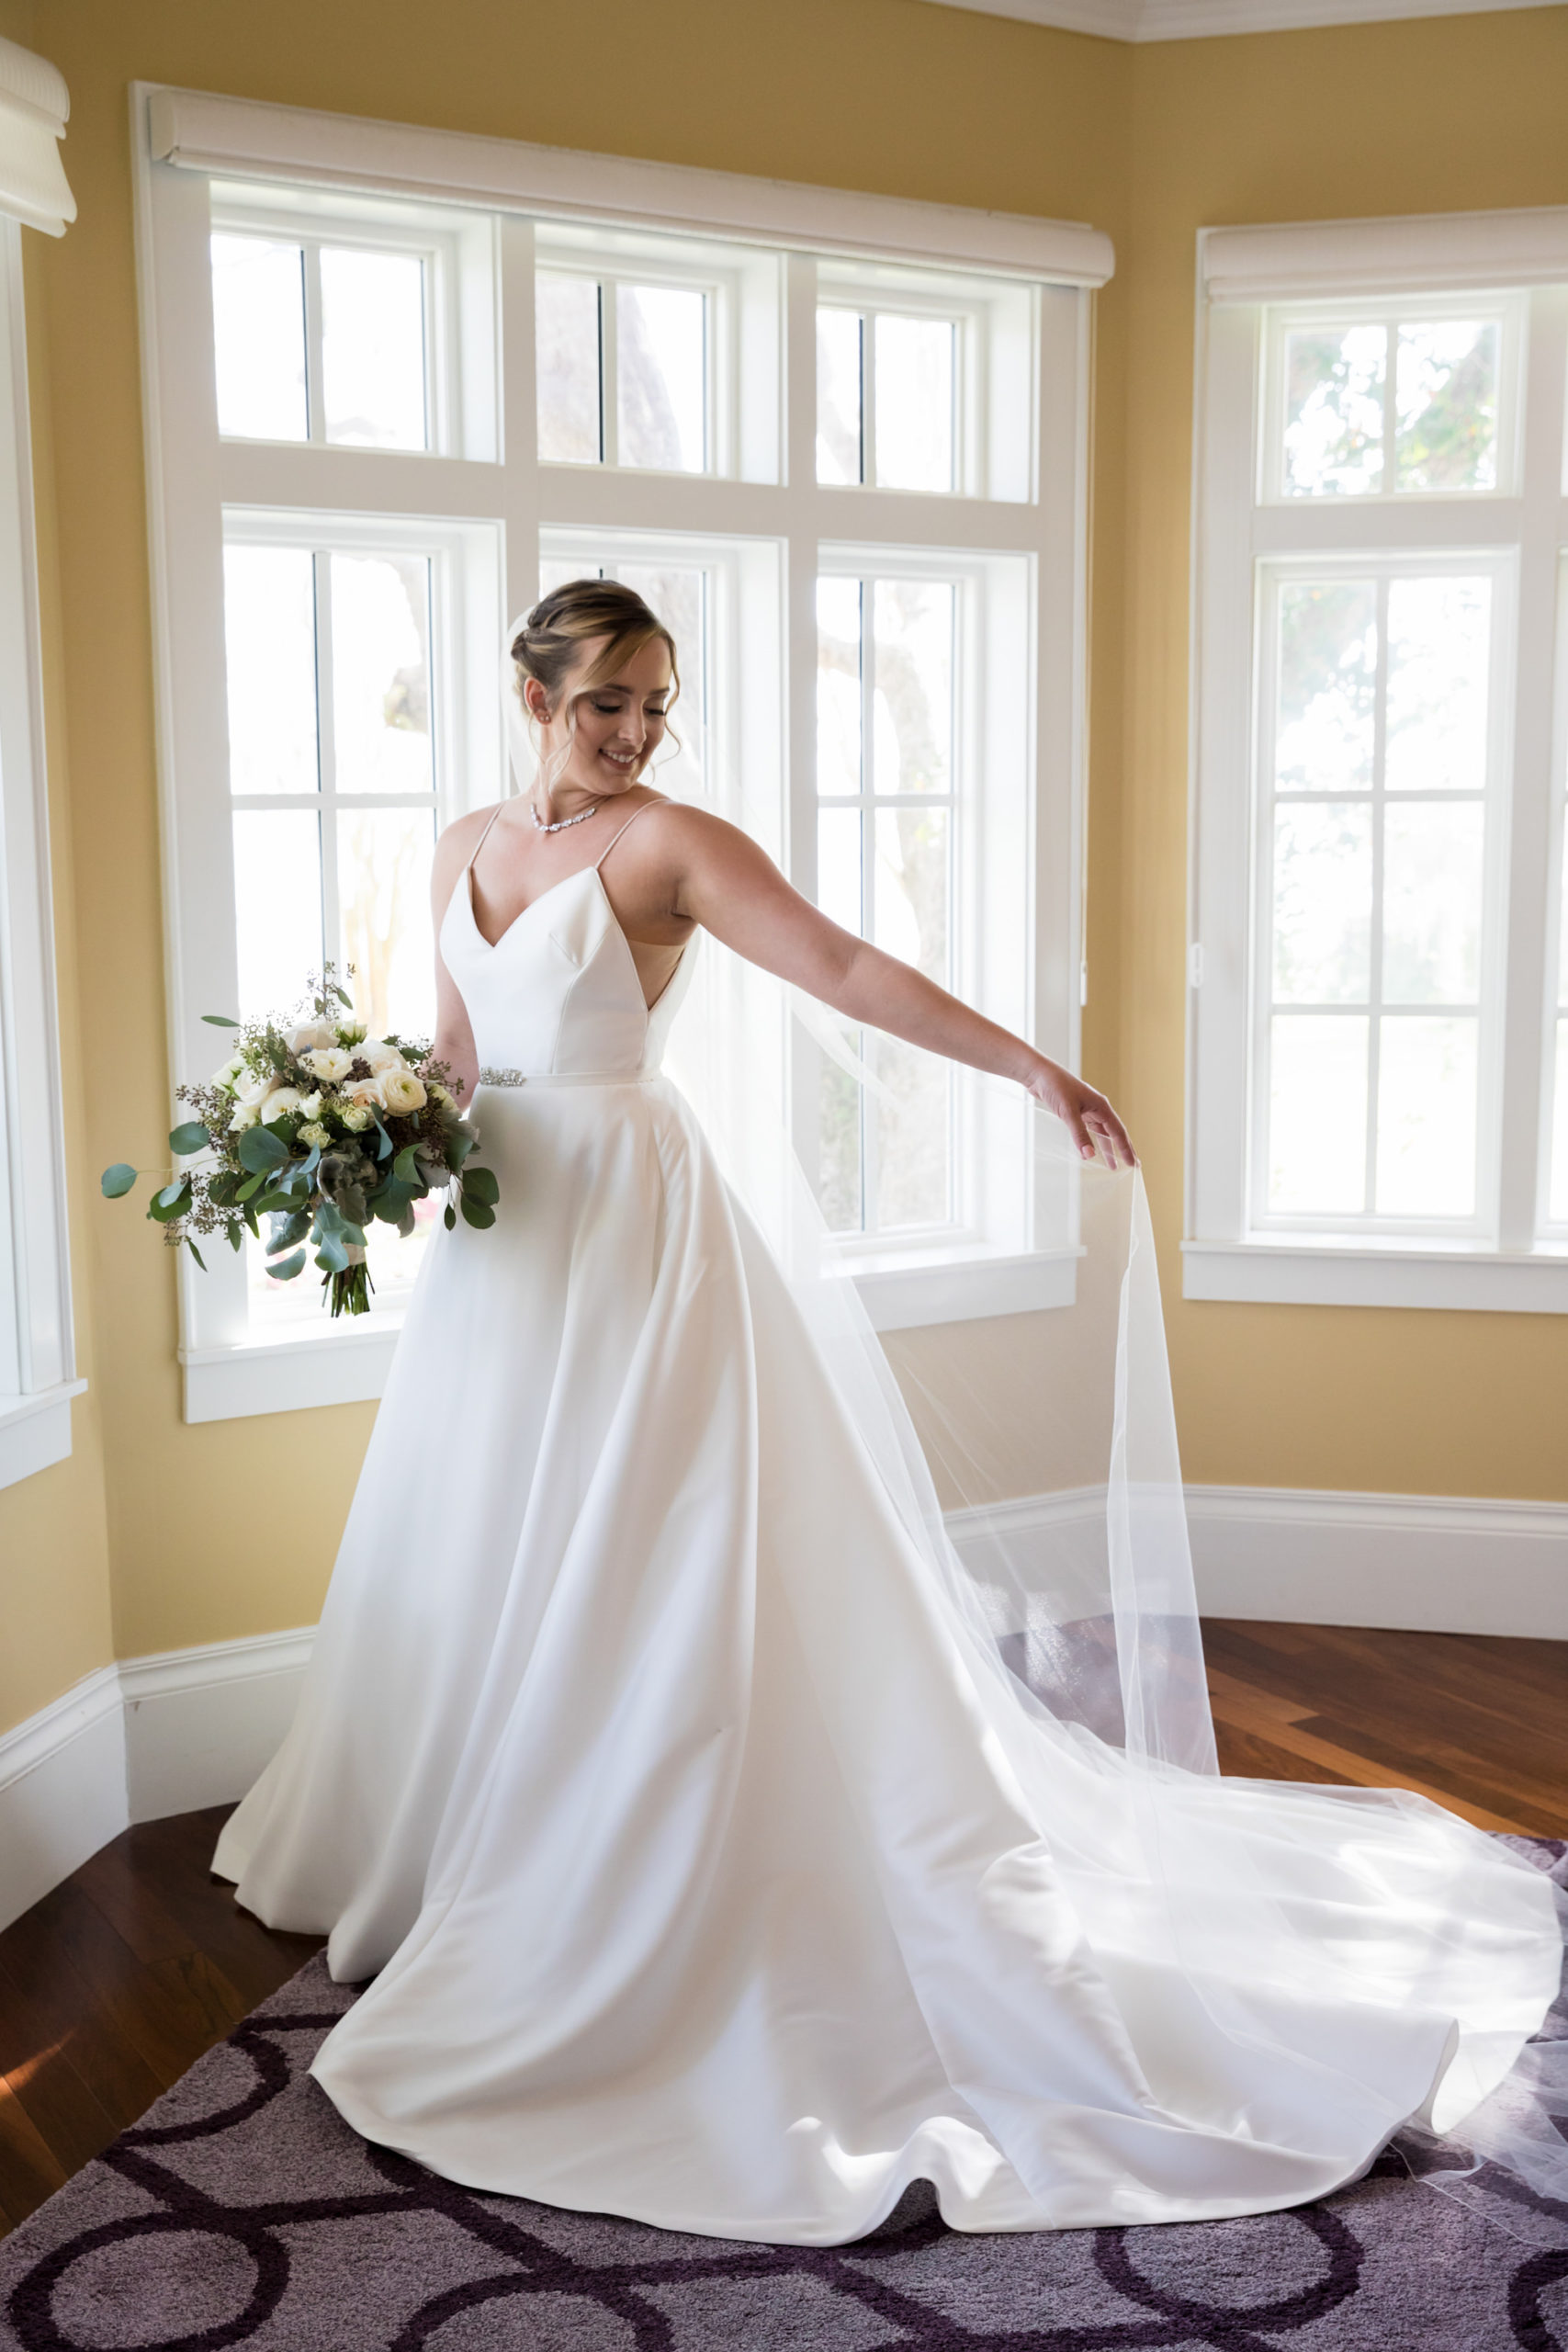 Tampa Bay Bride Beauty Portrait Wearing Justin Alexander A-Line V Neck with Straps and Rhinestone Belt Wedding Dress and Full Length Veil with Eucalyptus and Ivory Floral Bridal Bouquet